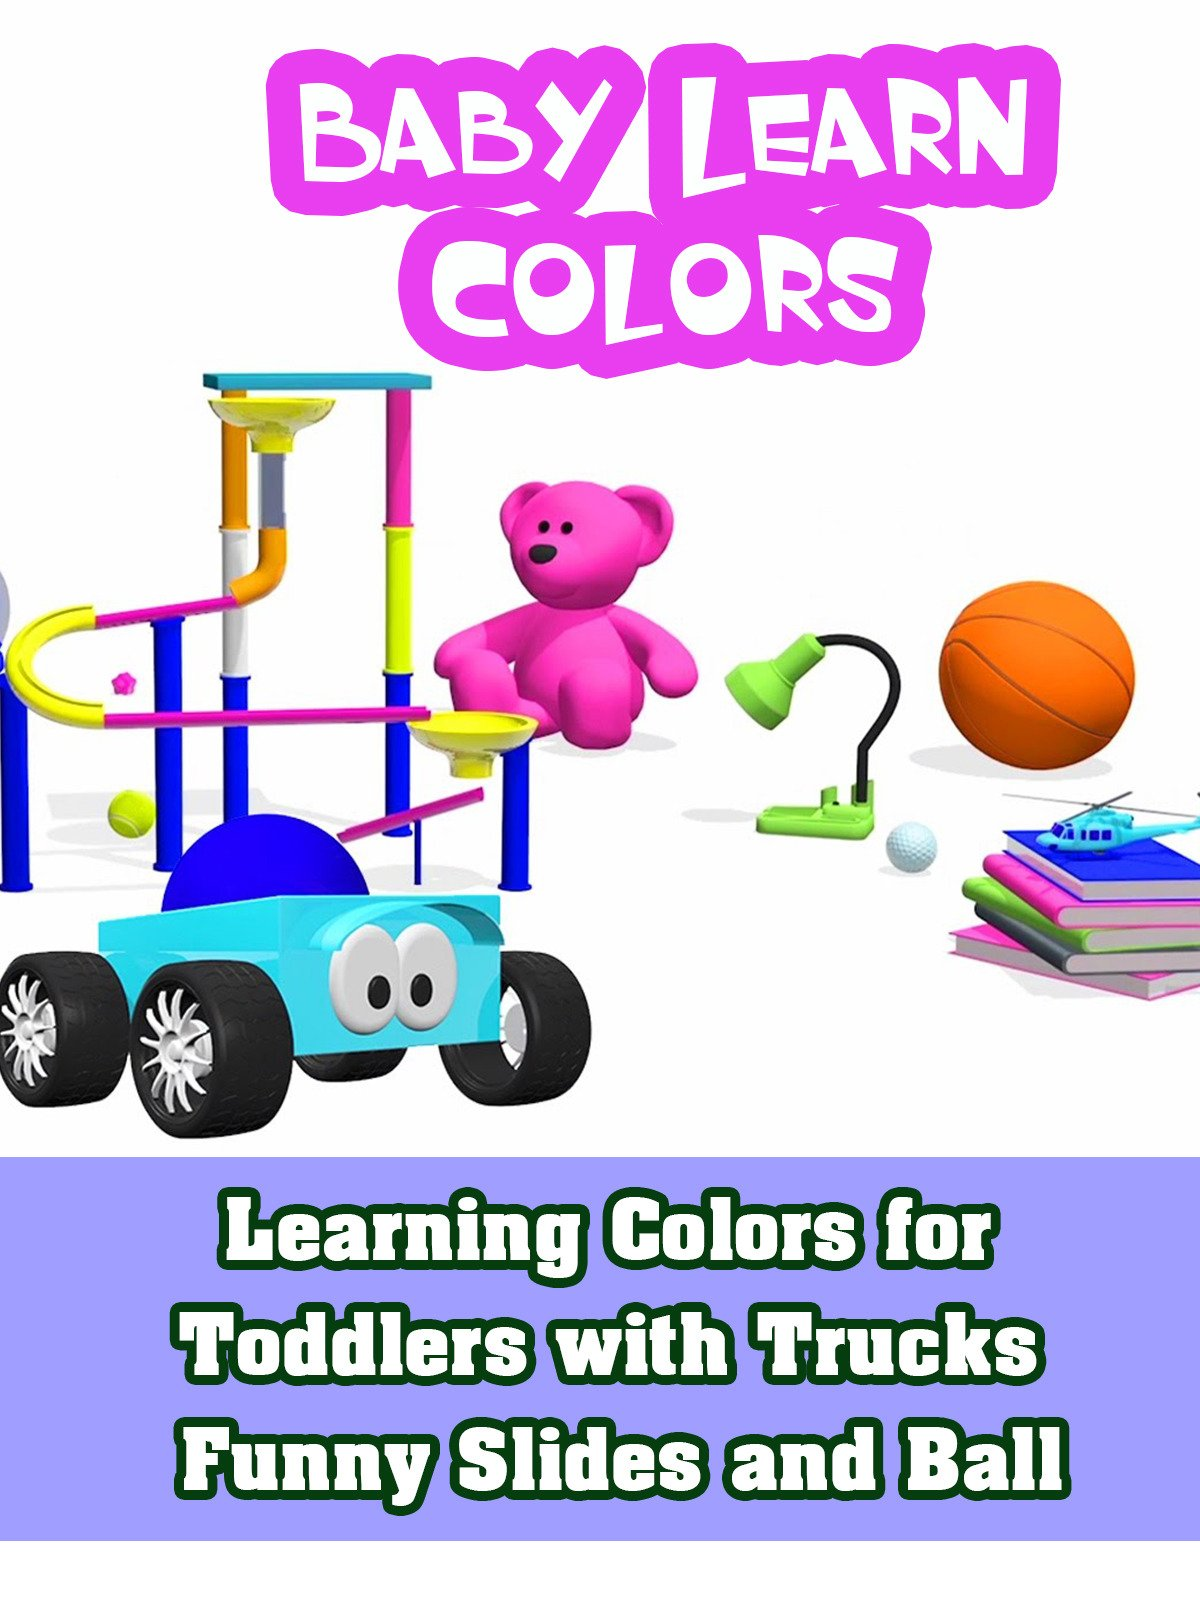 Learning Colors for Toddlers with Trucks Funny Slides and Ball on Amazon Prime Video UK